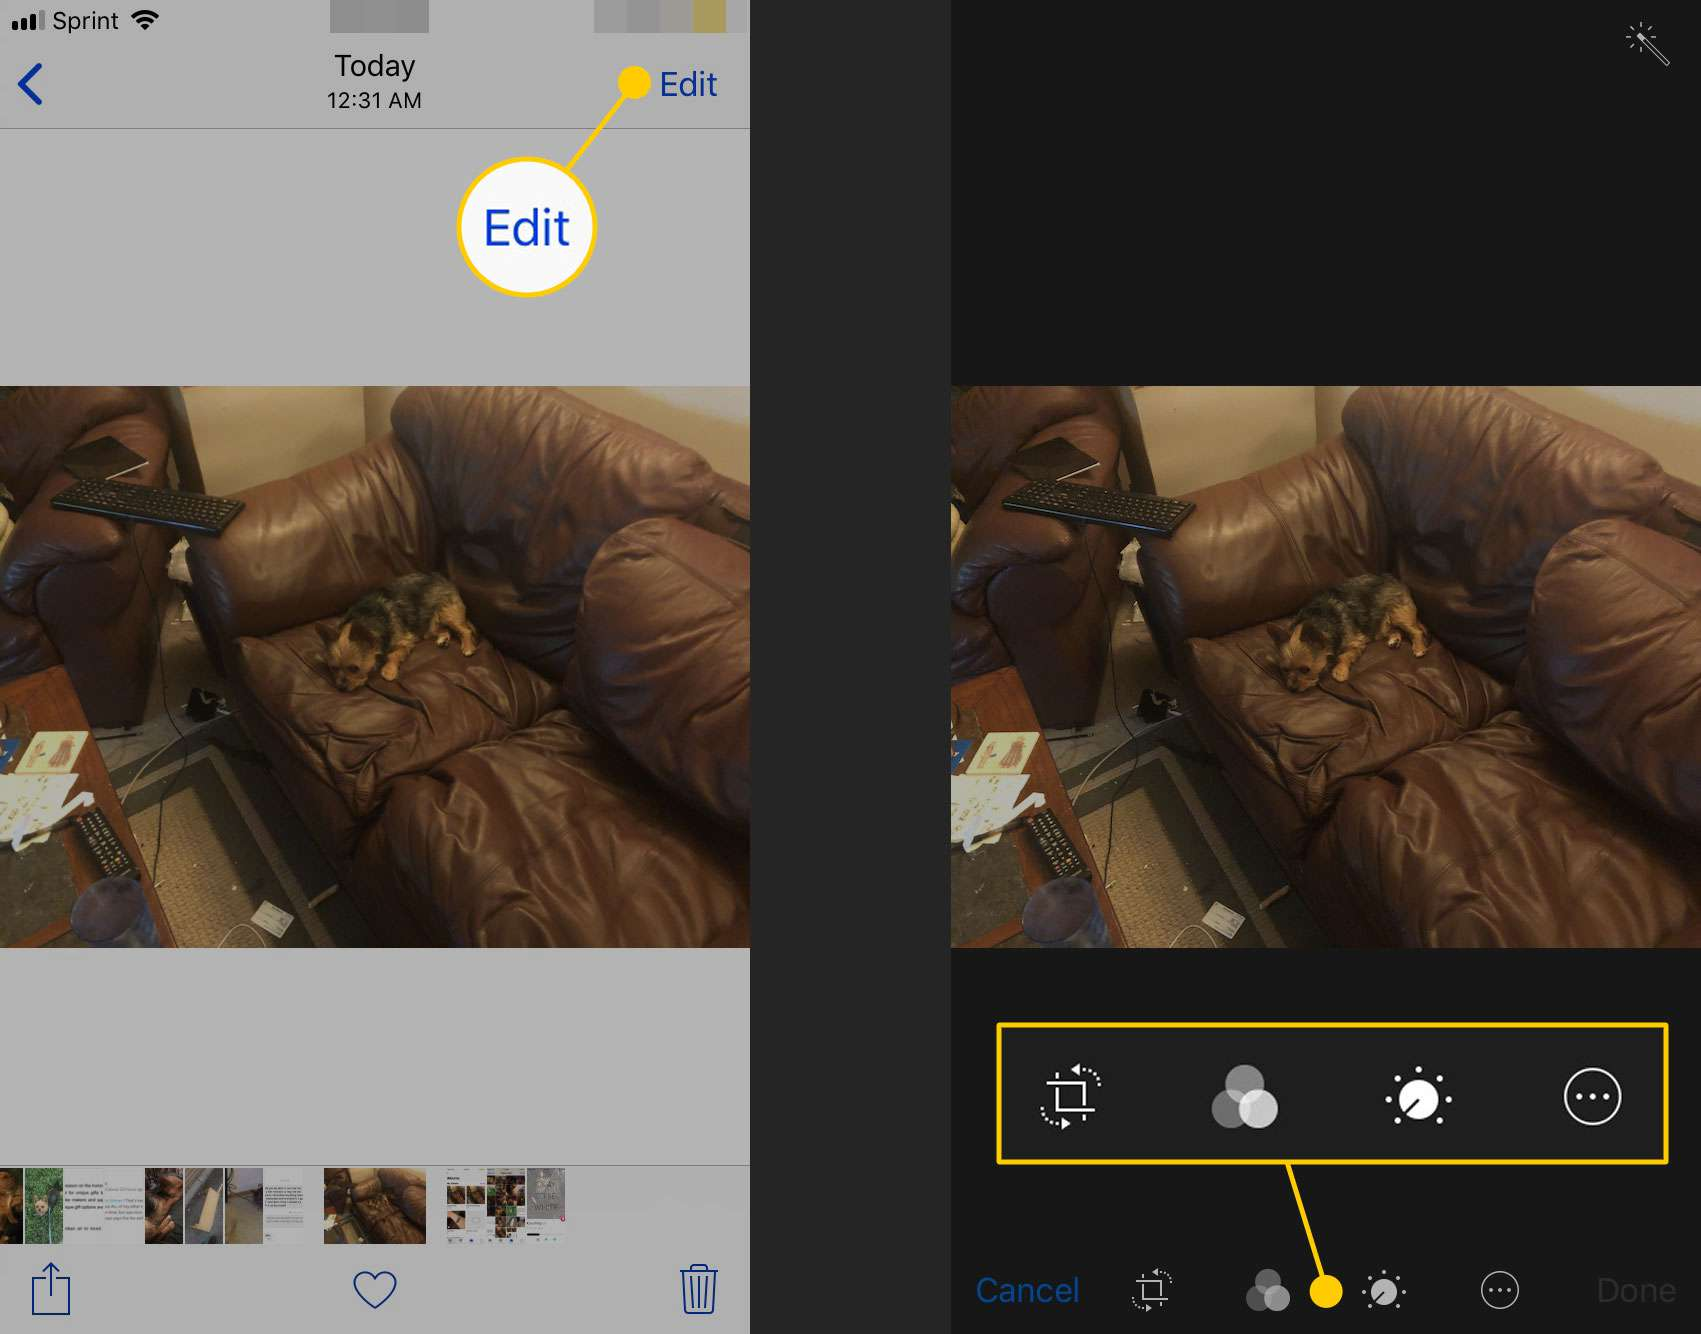 The edit button and editing tools in Photos on an iPhone